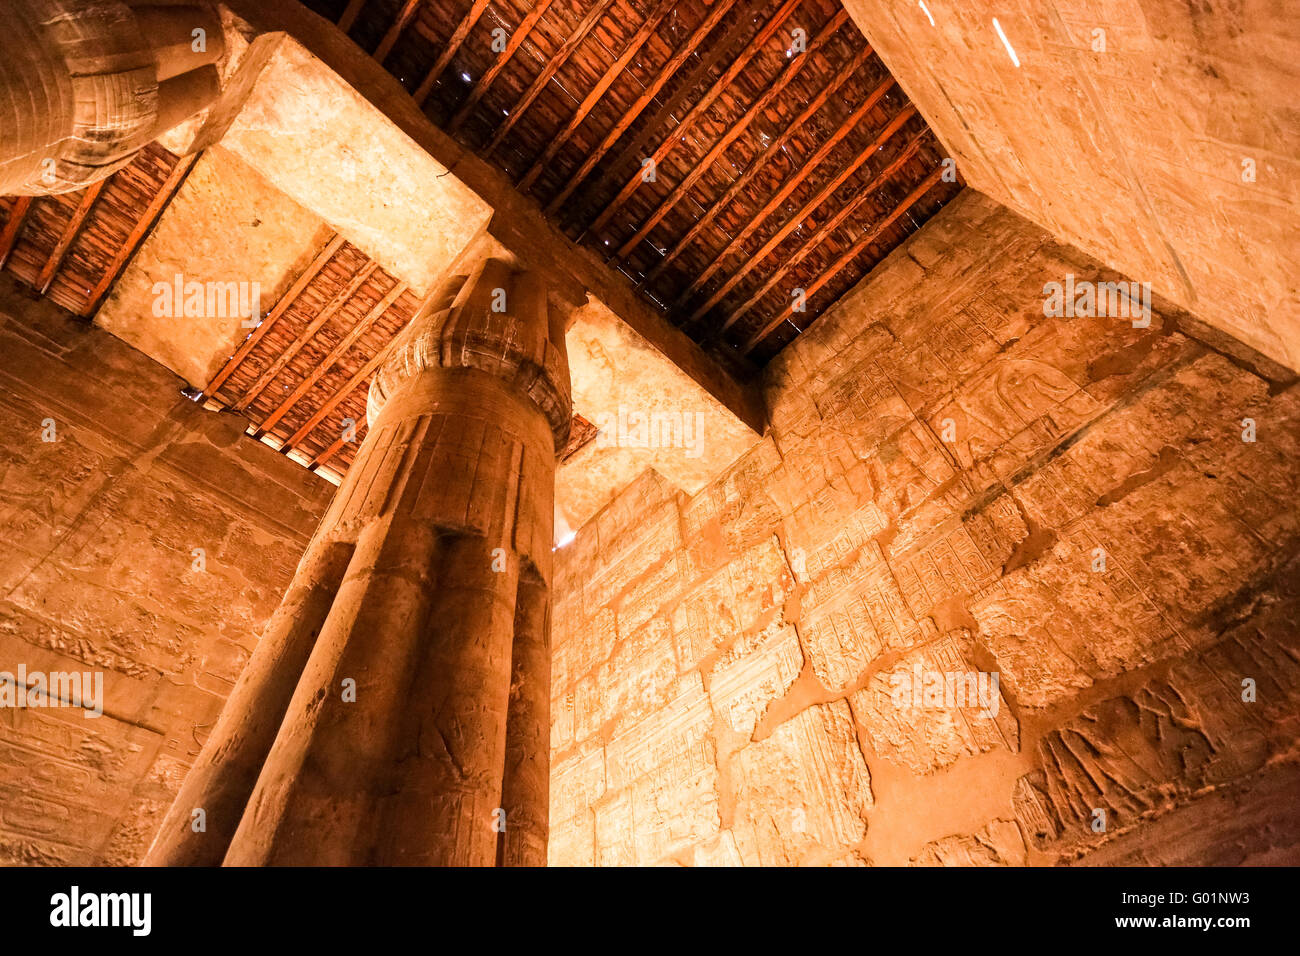 Temple of Luxor at night, Luxor city, Egypt - Stock Image